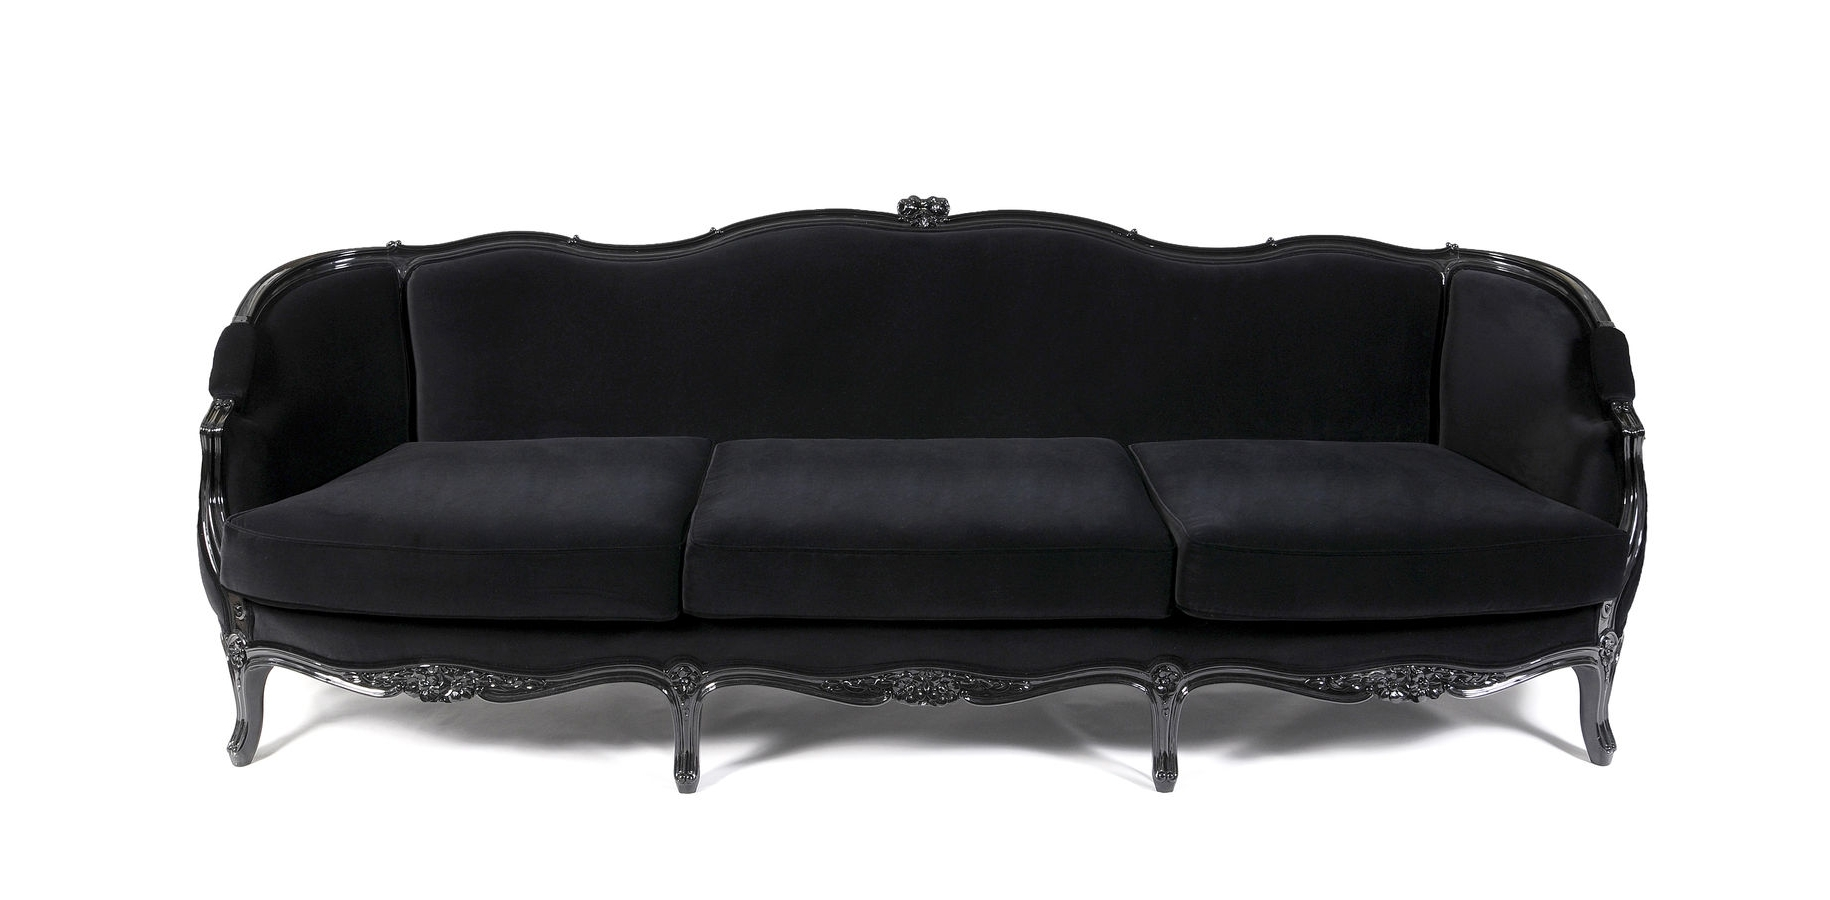 Gothic Sofas In 2019 Sofa : Gothic Desk Gothic Couch Gothic Room Decor Gothic Sofas For (View 8 of 20)